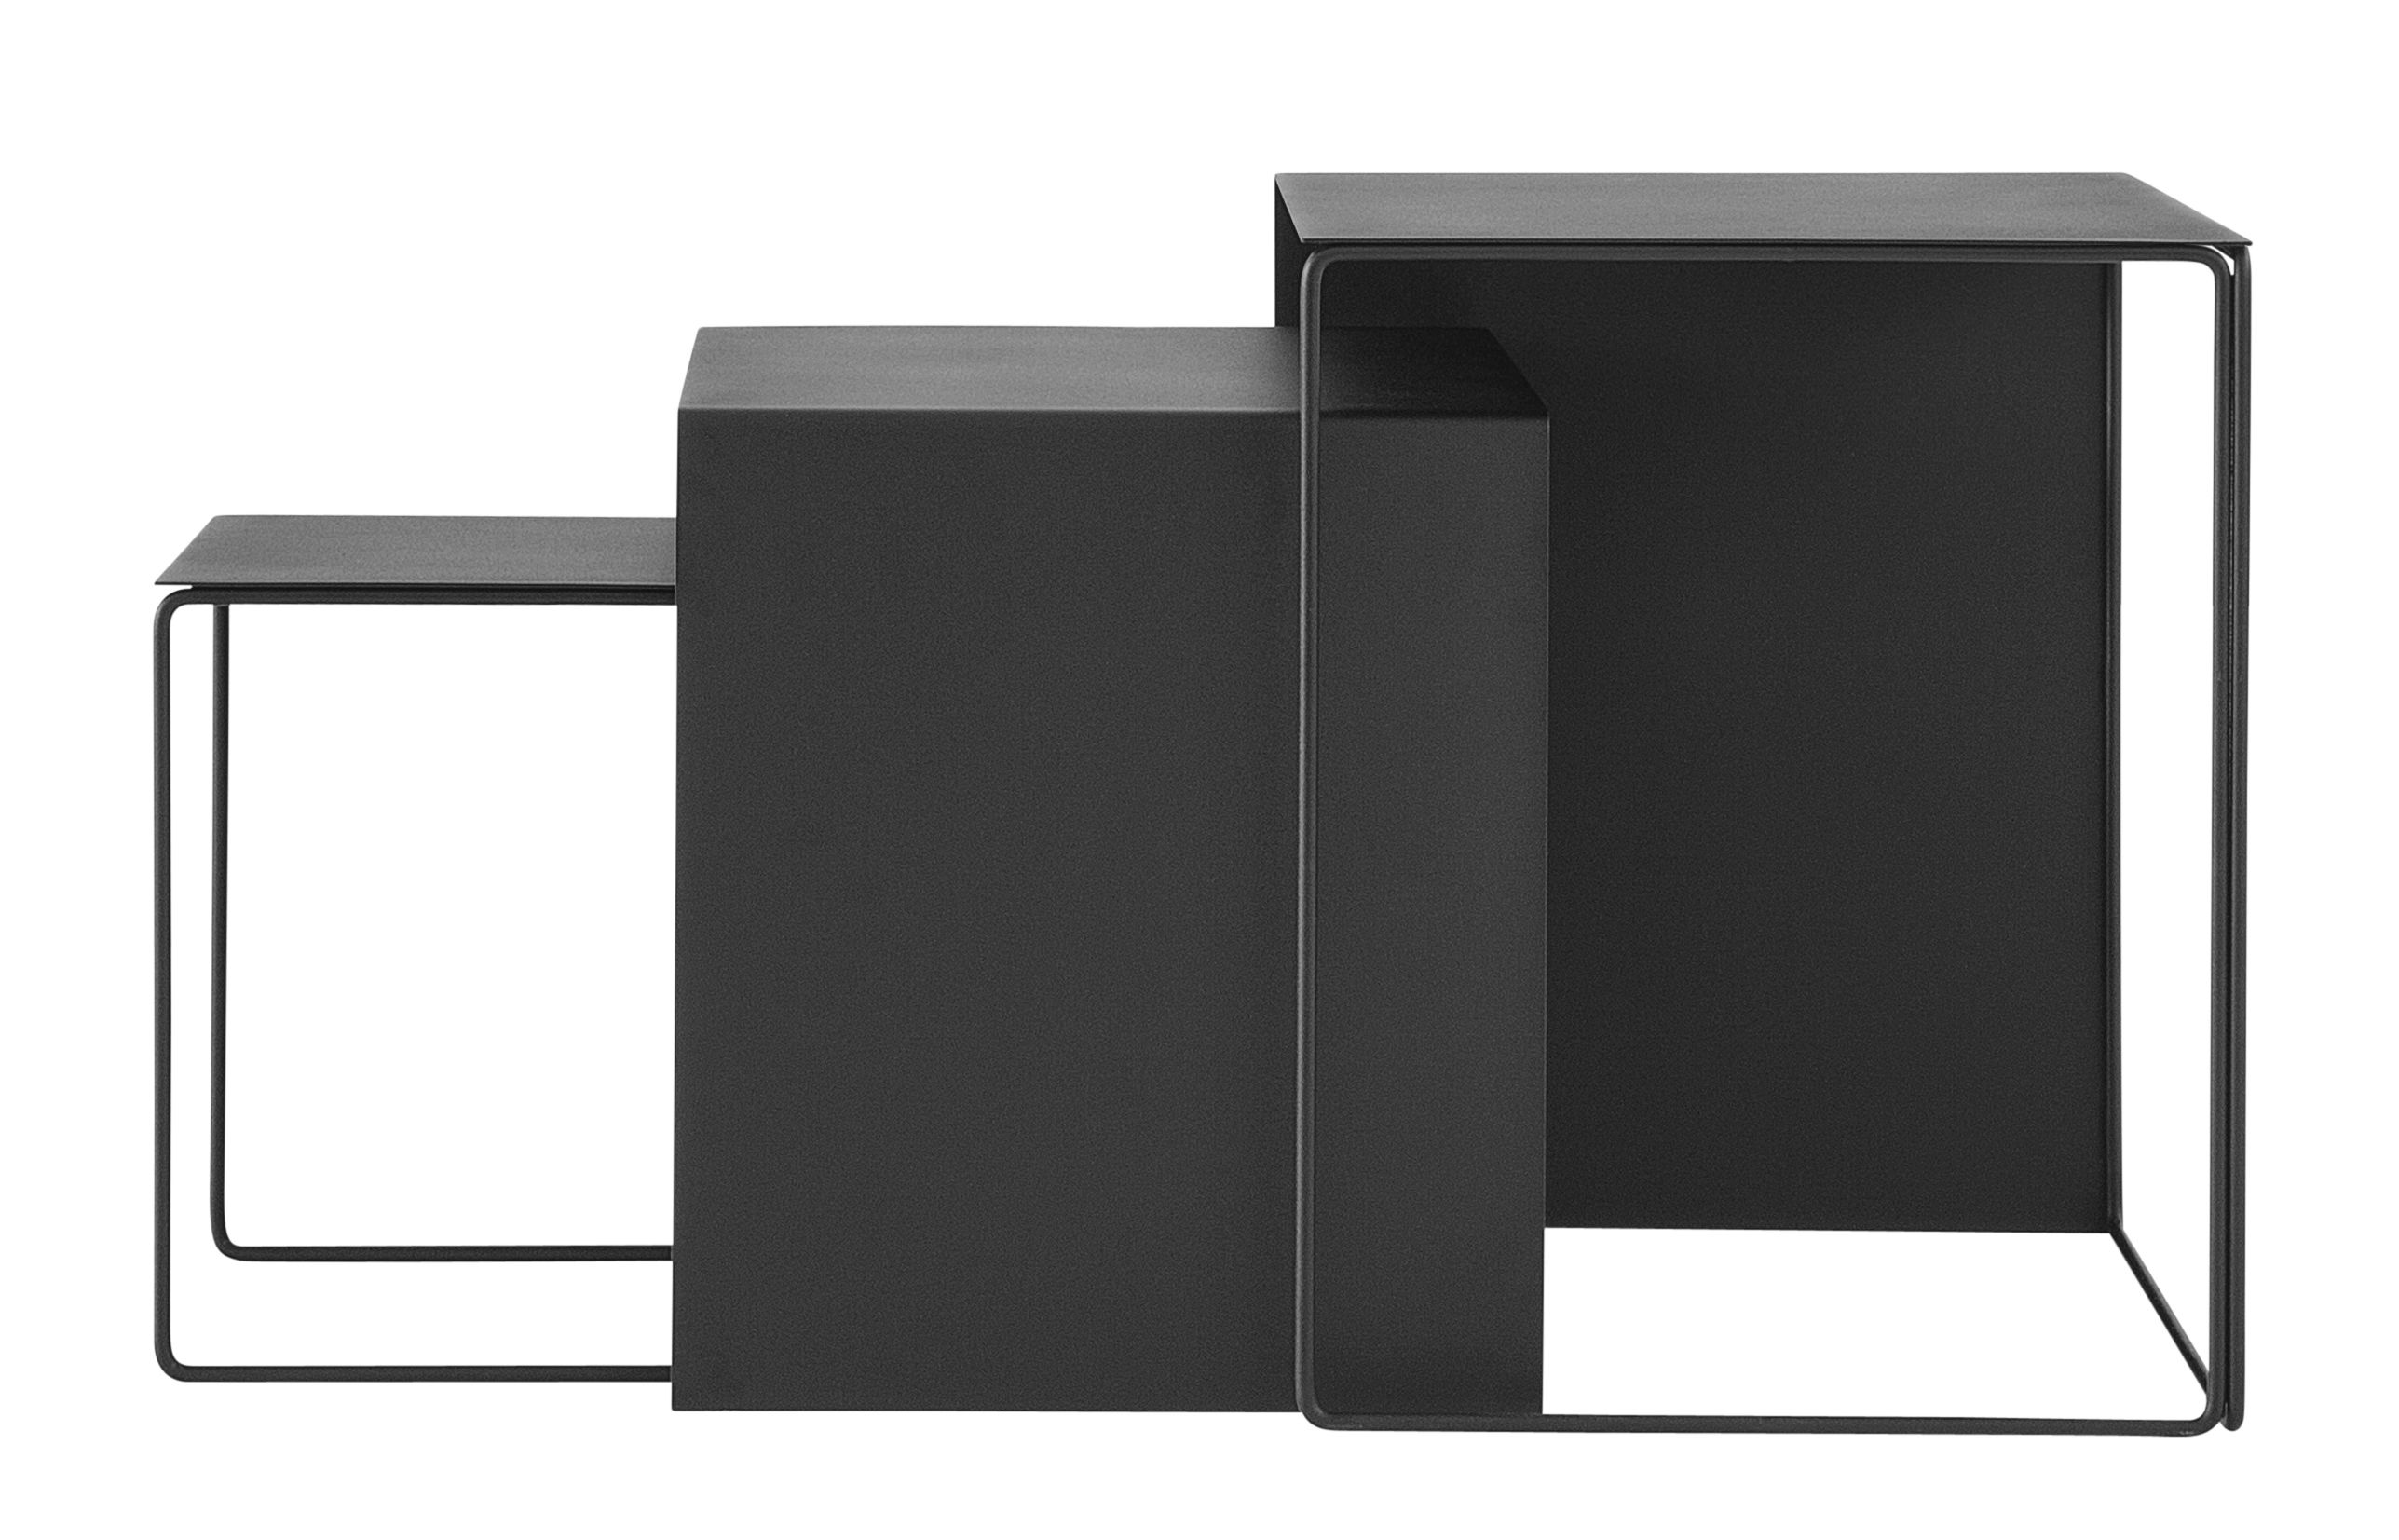 Furniture - Coffee Tables - Cluster Nested tables - Set of 3 nesting tables by Ferm Living - Black - Metal